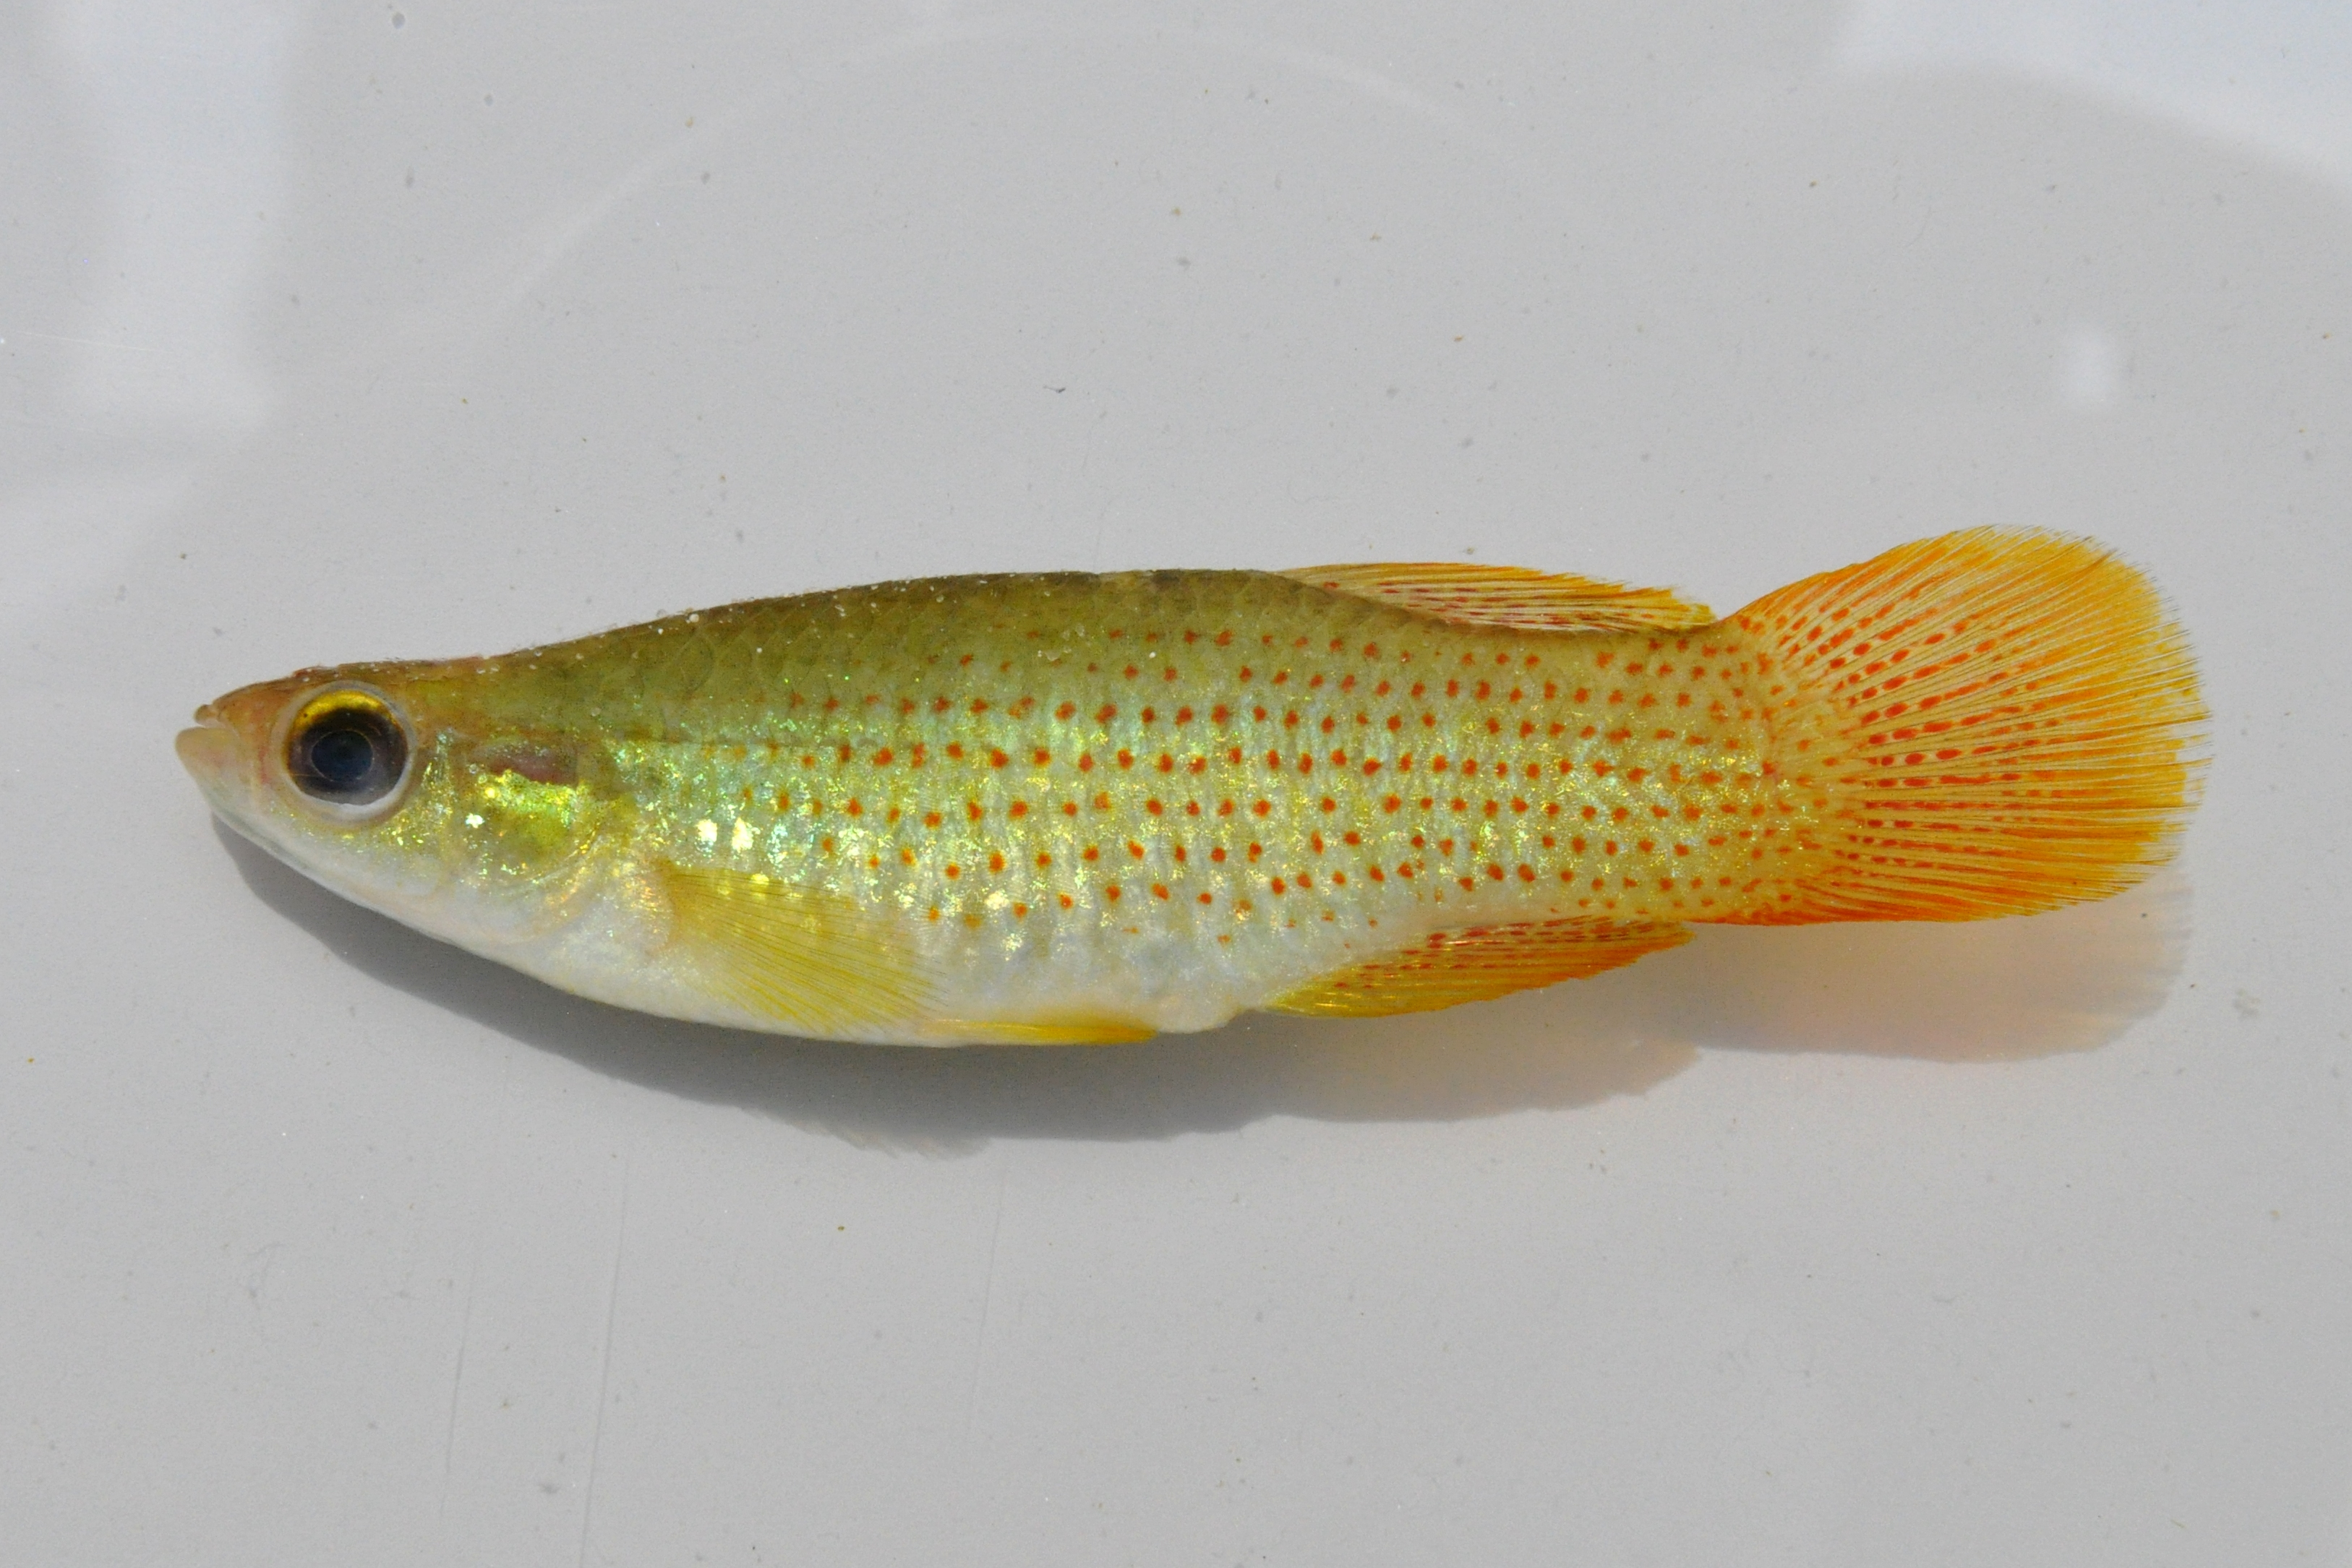 male golden topminnow from Ocala national forest FL 4OCT09 by BZ